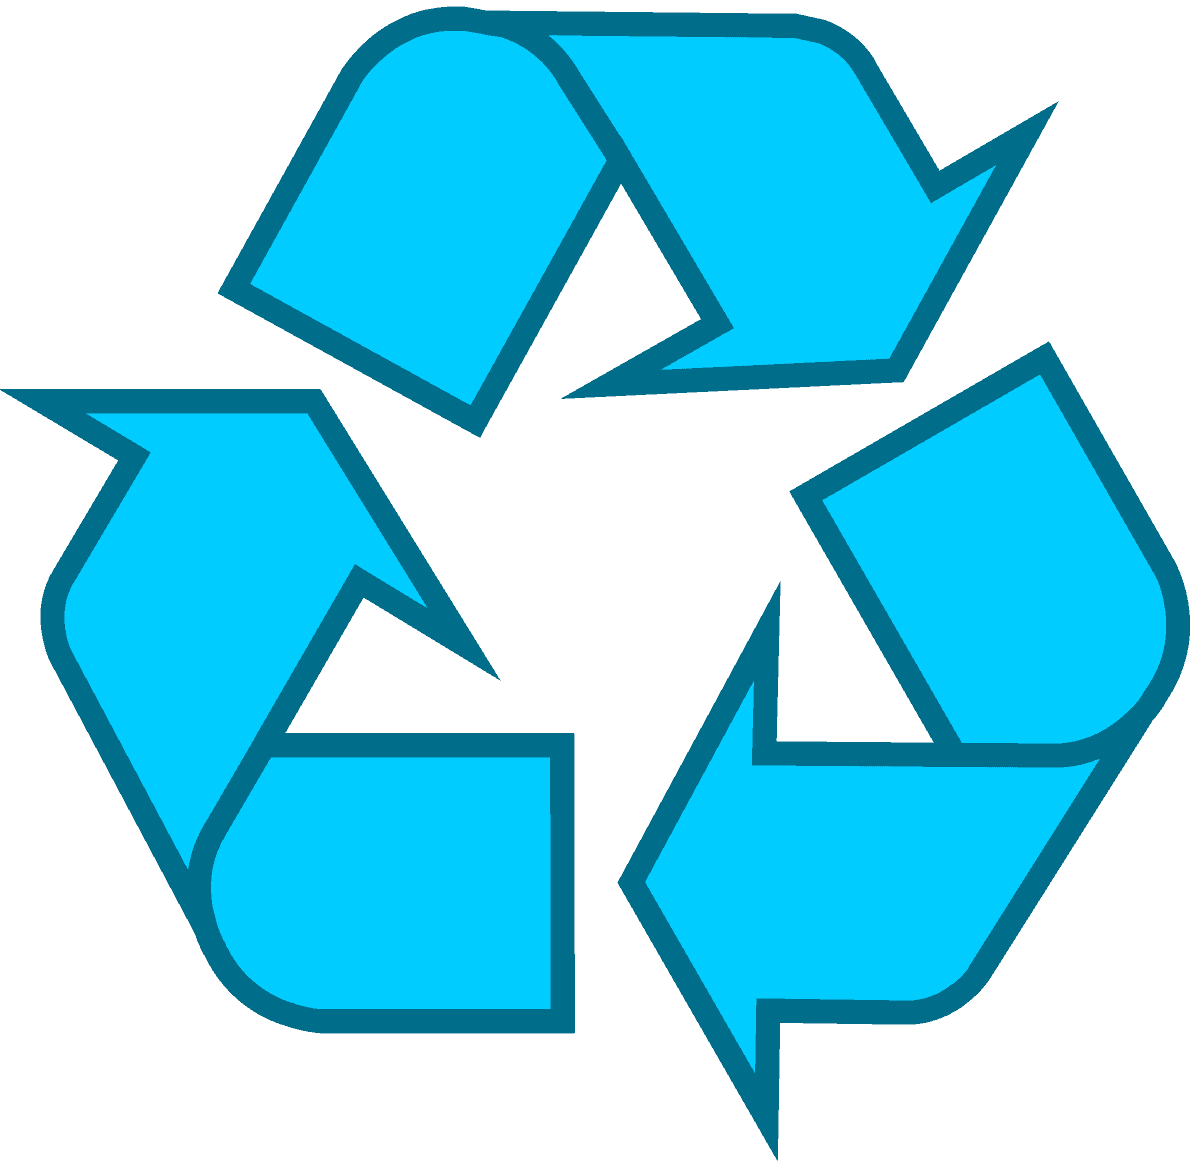 Recycling Symbol Download The Original Recycle Logo